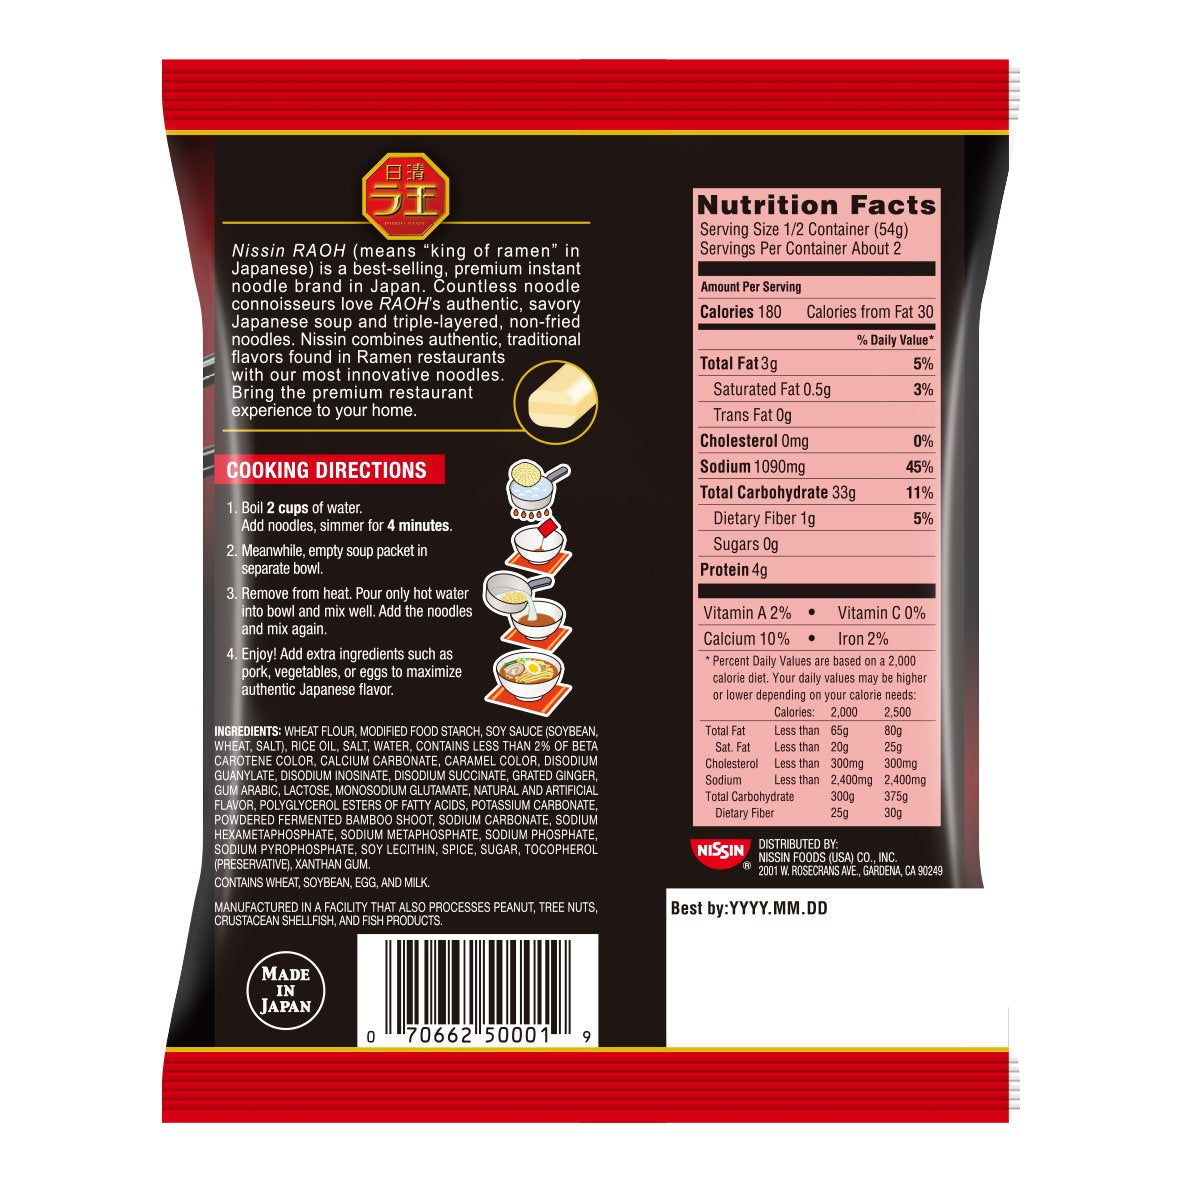 Nissin RAOH Soy Sauce Flavor Authentic Japanese-Style Ramen 6-PACK X 3.77 Oz (2LBS)